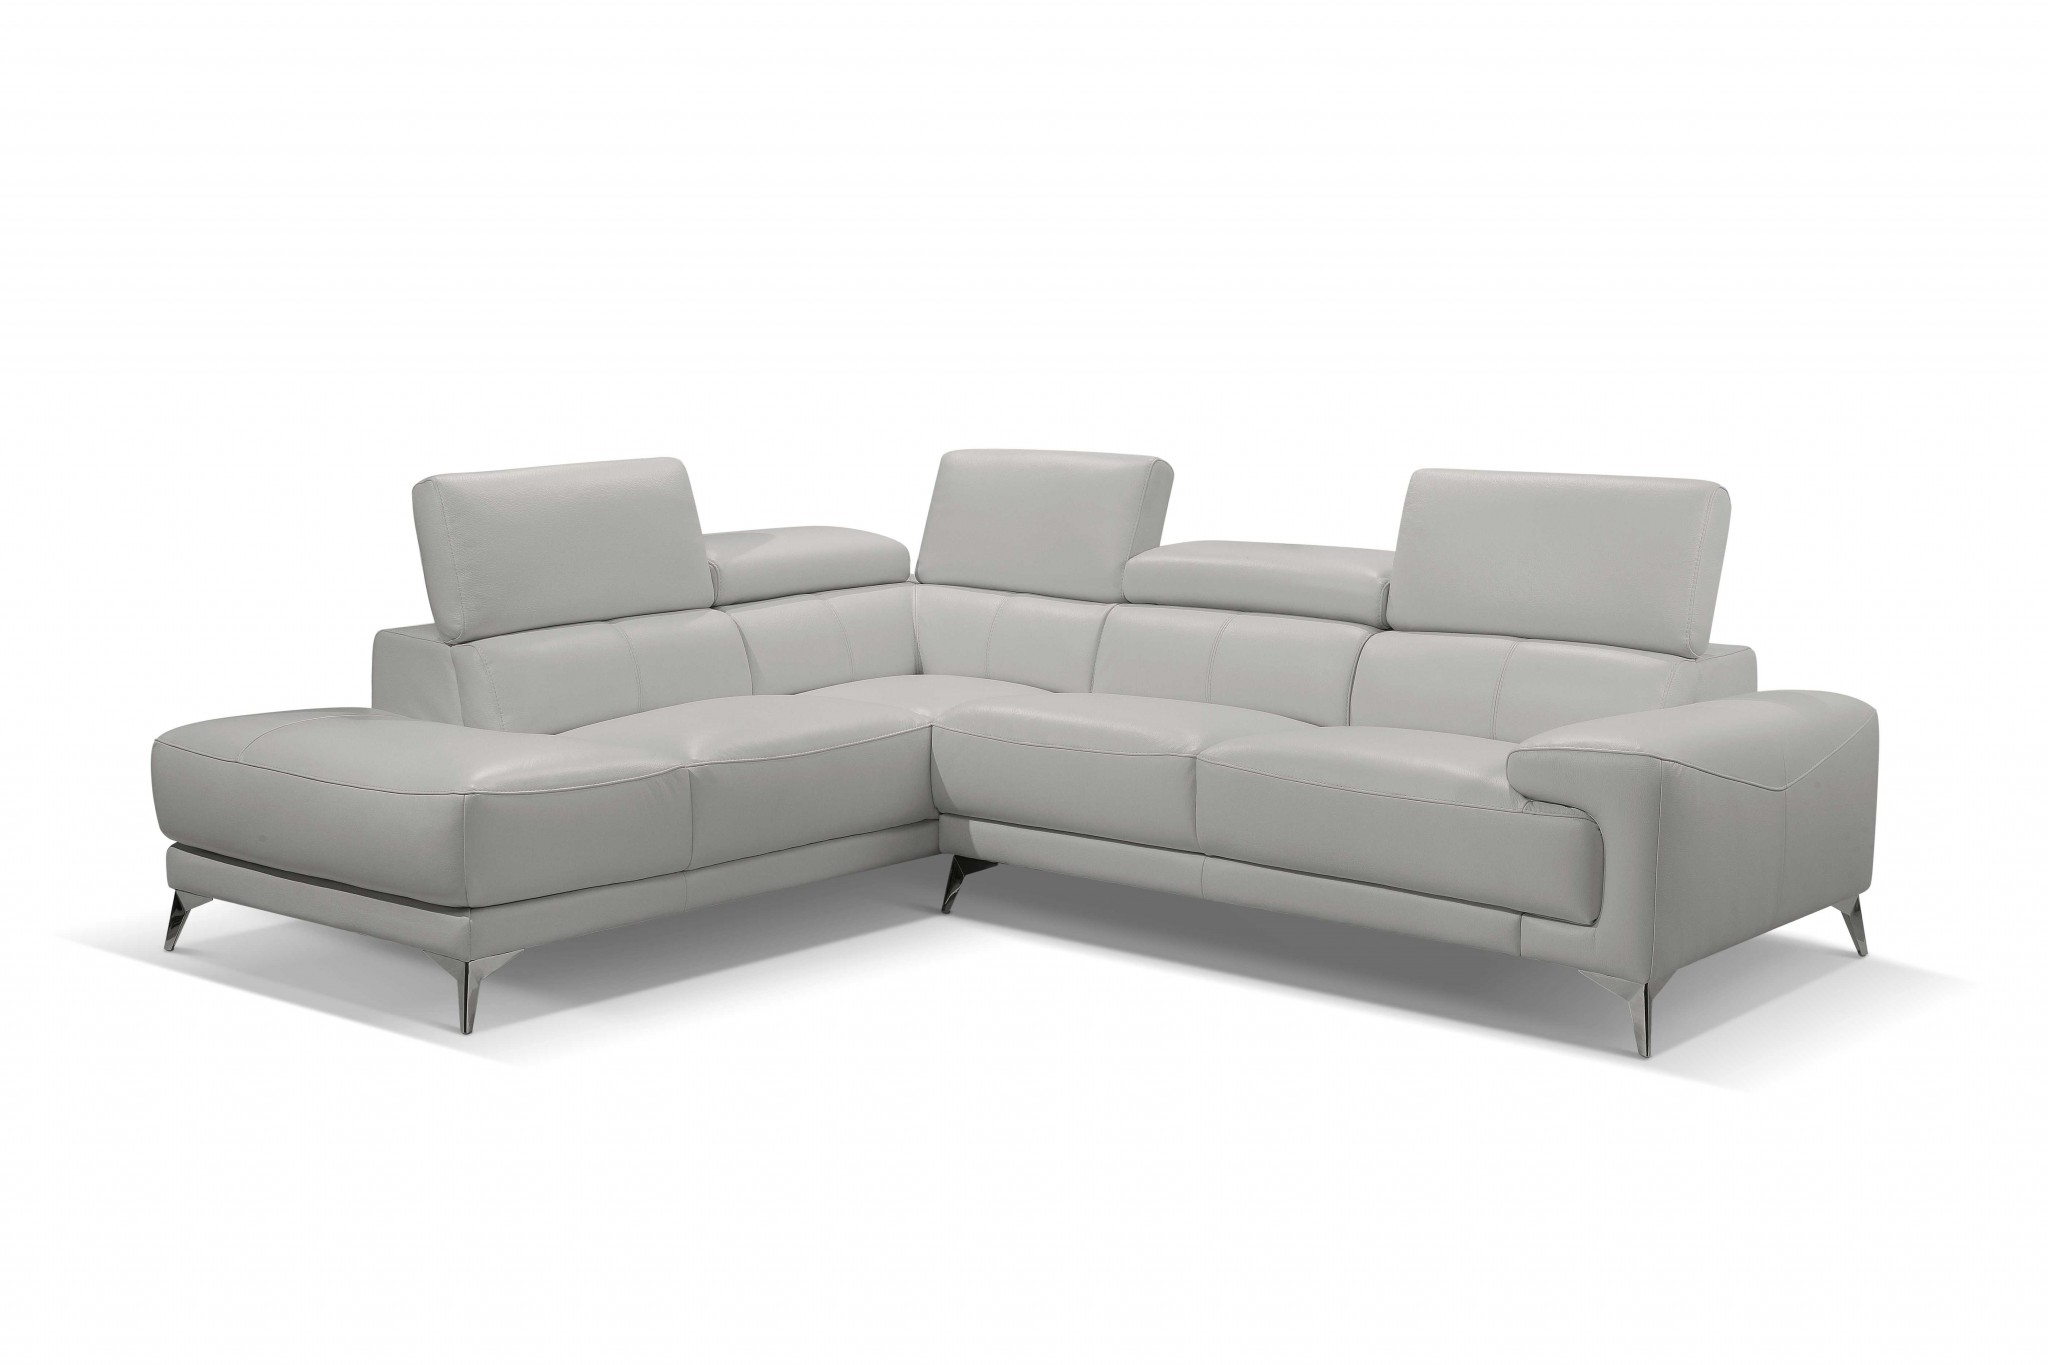 [%Sectional, Chaise On Right When Facing, White Top Grain Inside Trendy Matilda 100% Top Grain Leather Chaise Sectional Sofas|Matilda 100% Top Grain Leather Chaise Sectional Sofas Throughout Best And Newest Sectional, Chaise On Right When Facing, White Top Grain|Latest Matilda 100% Top Grain Leather Chaise Sectional Sofas With Sectional, Chaise On Right When Facing, White Top Grain|Most Recently Released Sectional, Chaise On Right When Facing, White Top Grain Regarding Matilda 100% Top Grain Leather Chaise Sectional Sofas%] (View 12 of 25)